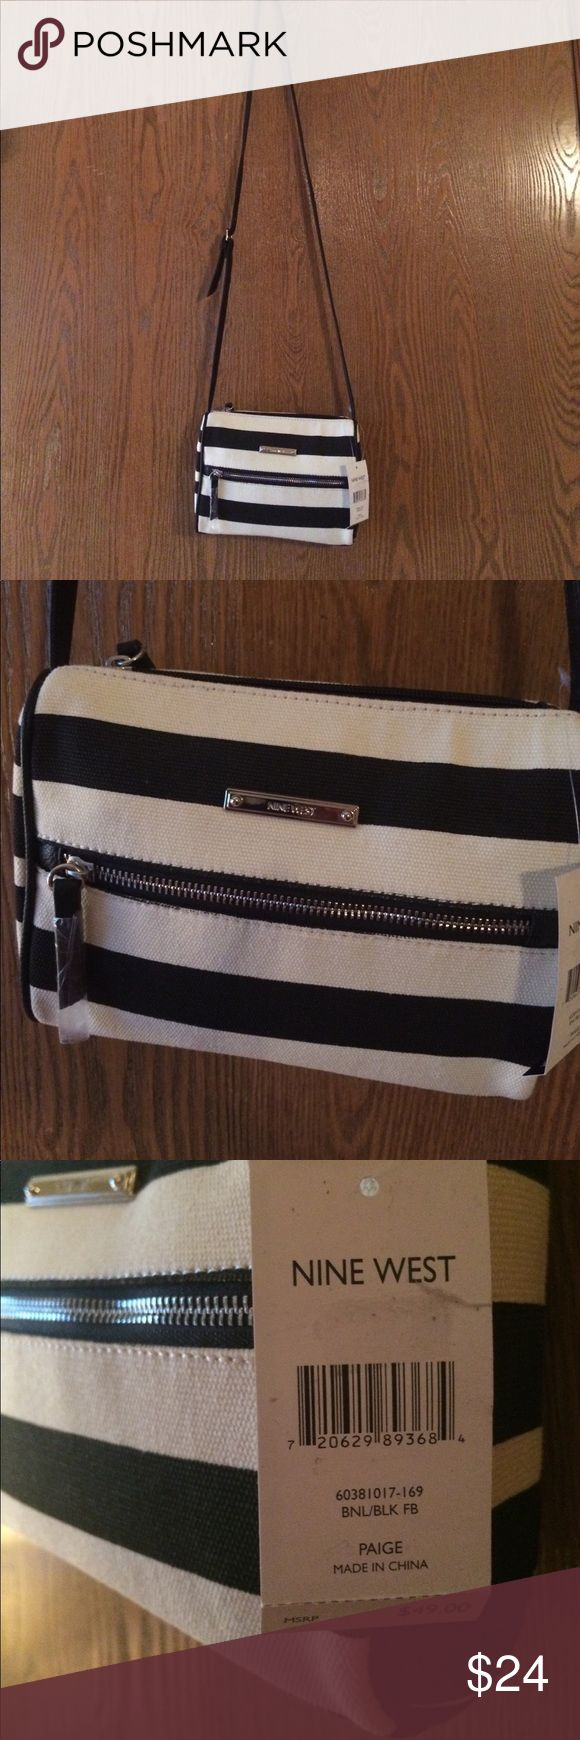 NWT black and iff white Nine west purse NWT black and iff white Nine west purse Nine West Bags